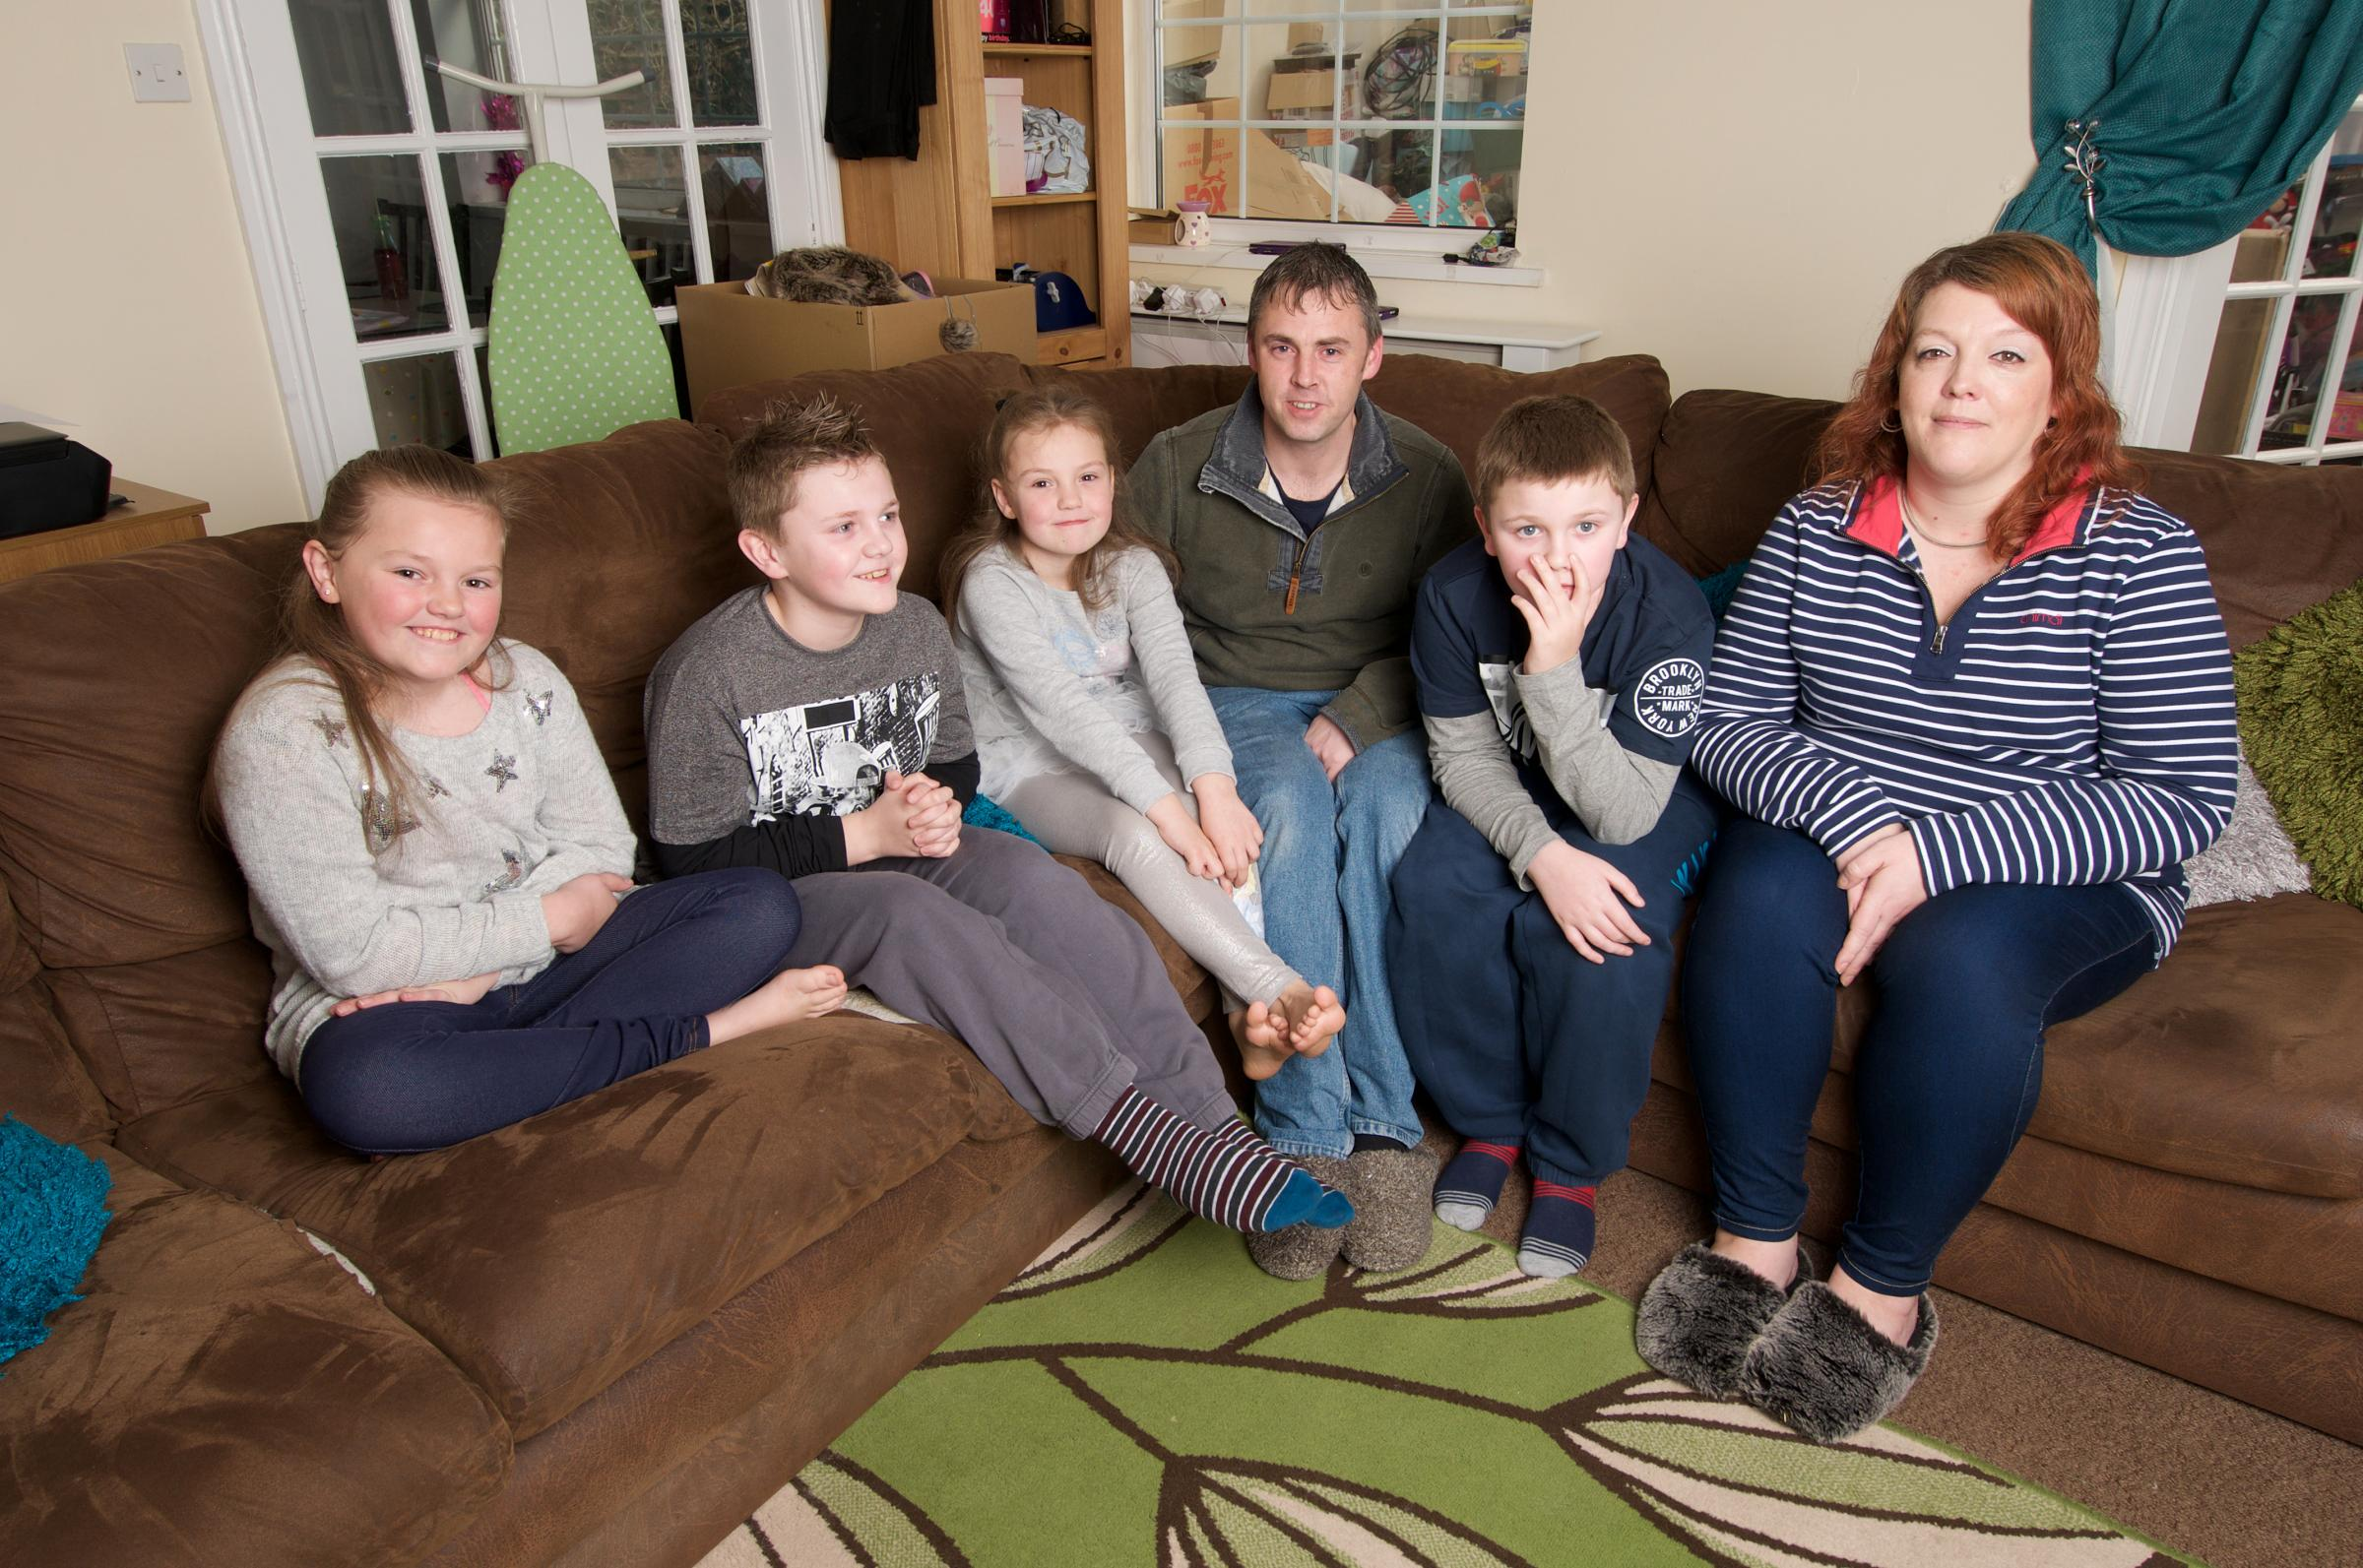 The Penn family whose tale has been shortlisted for a national award. Picture: Ben Rector